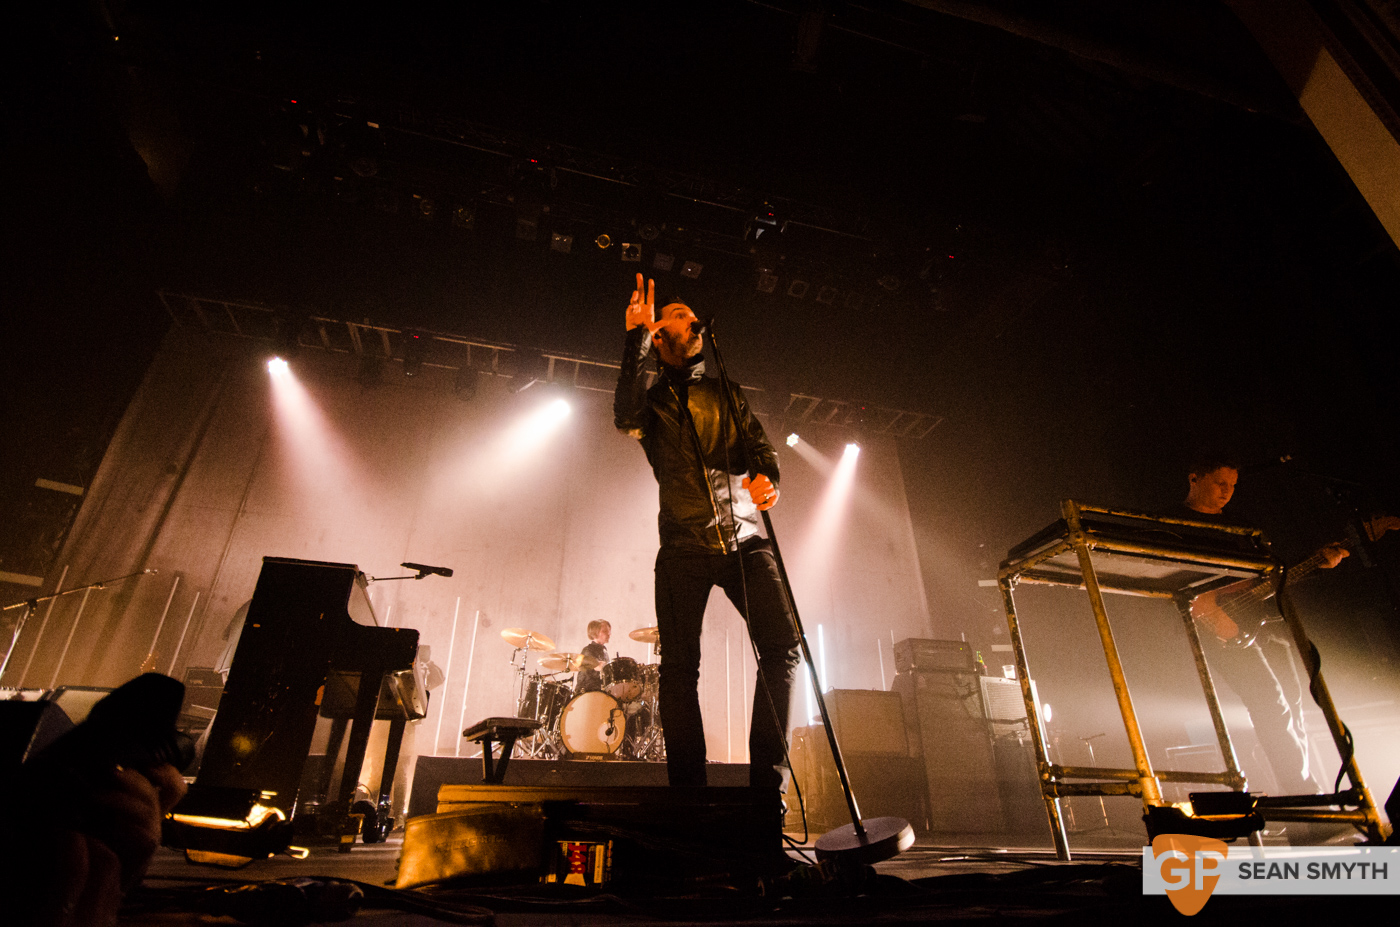 editors-at-the-olympia-theatre-by-sean-smyth-10-10-15-21-of-28_21902249670_o